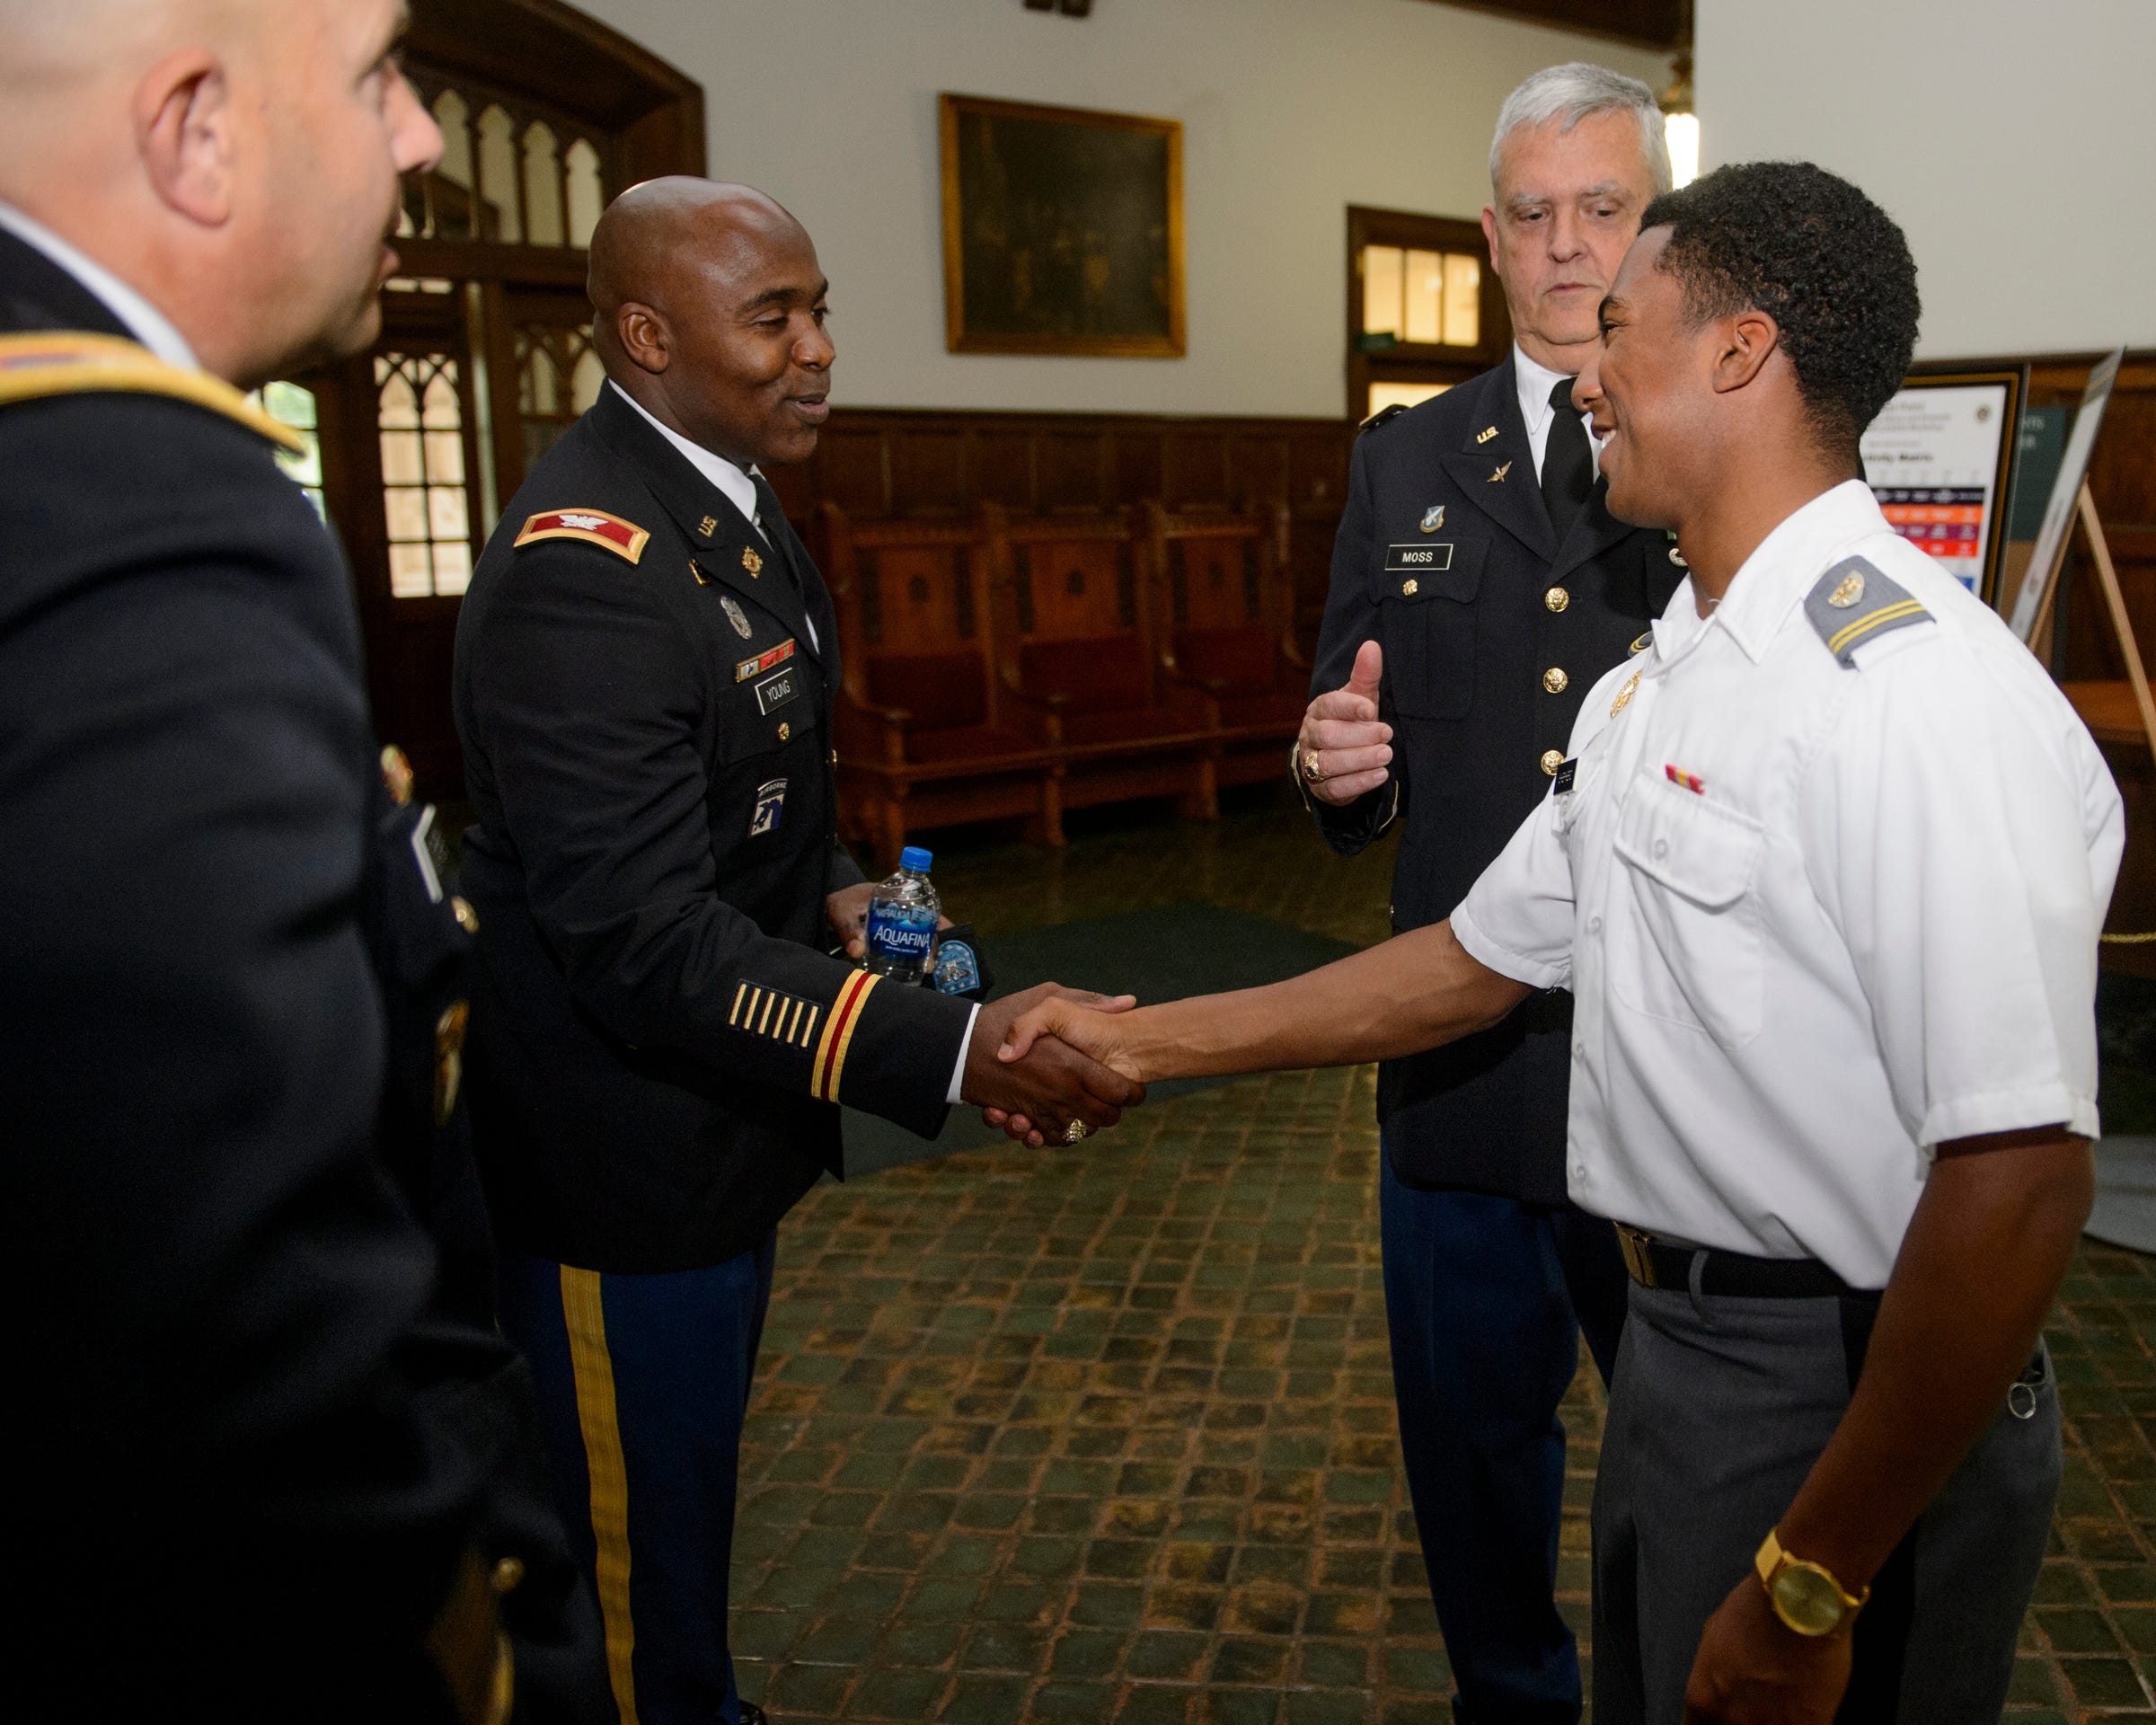 West Point Leadership Ethics and Diversity in STEM workshop